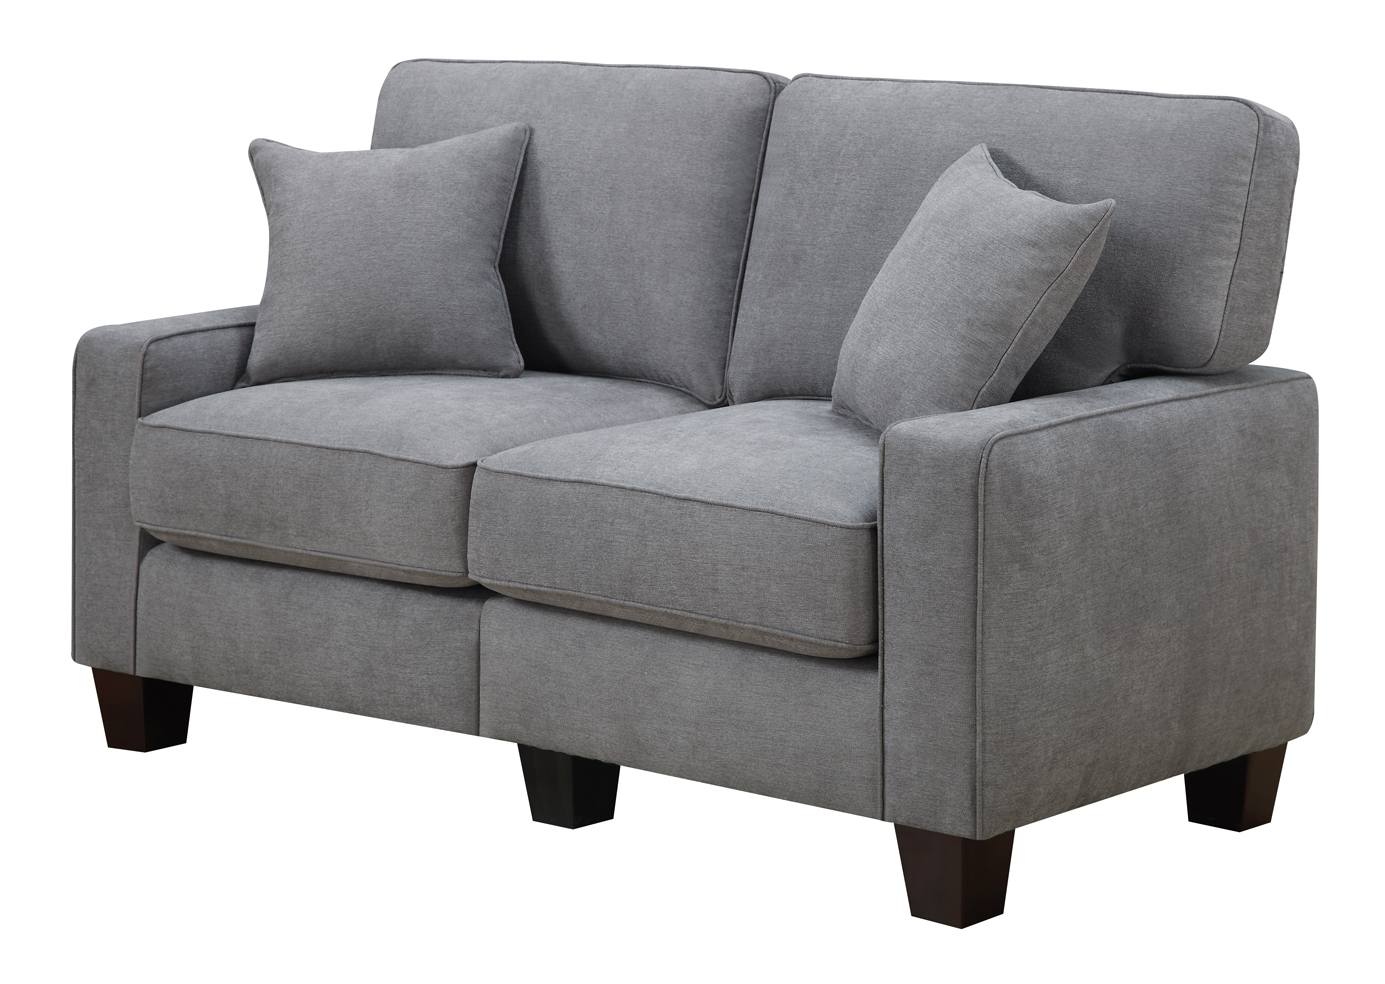 Serta RTA Palisades Collection 61 Loveseat in Glacial Gray